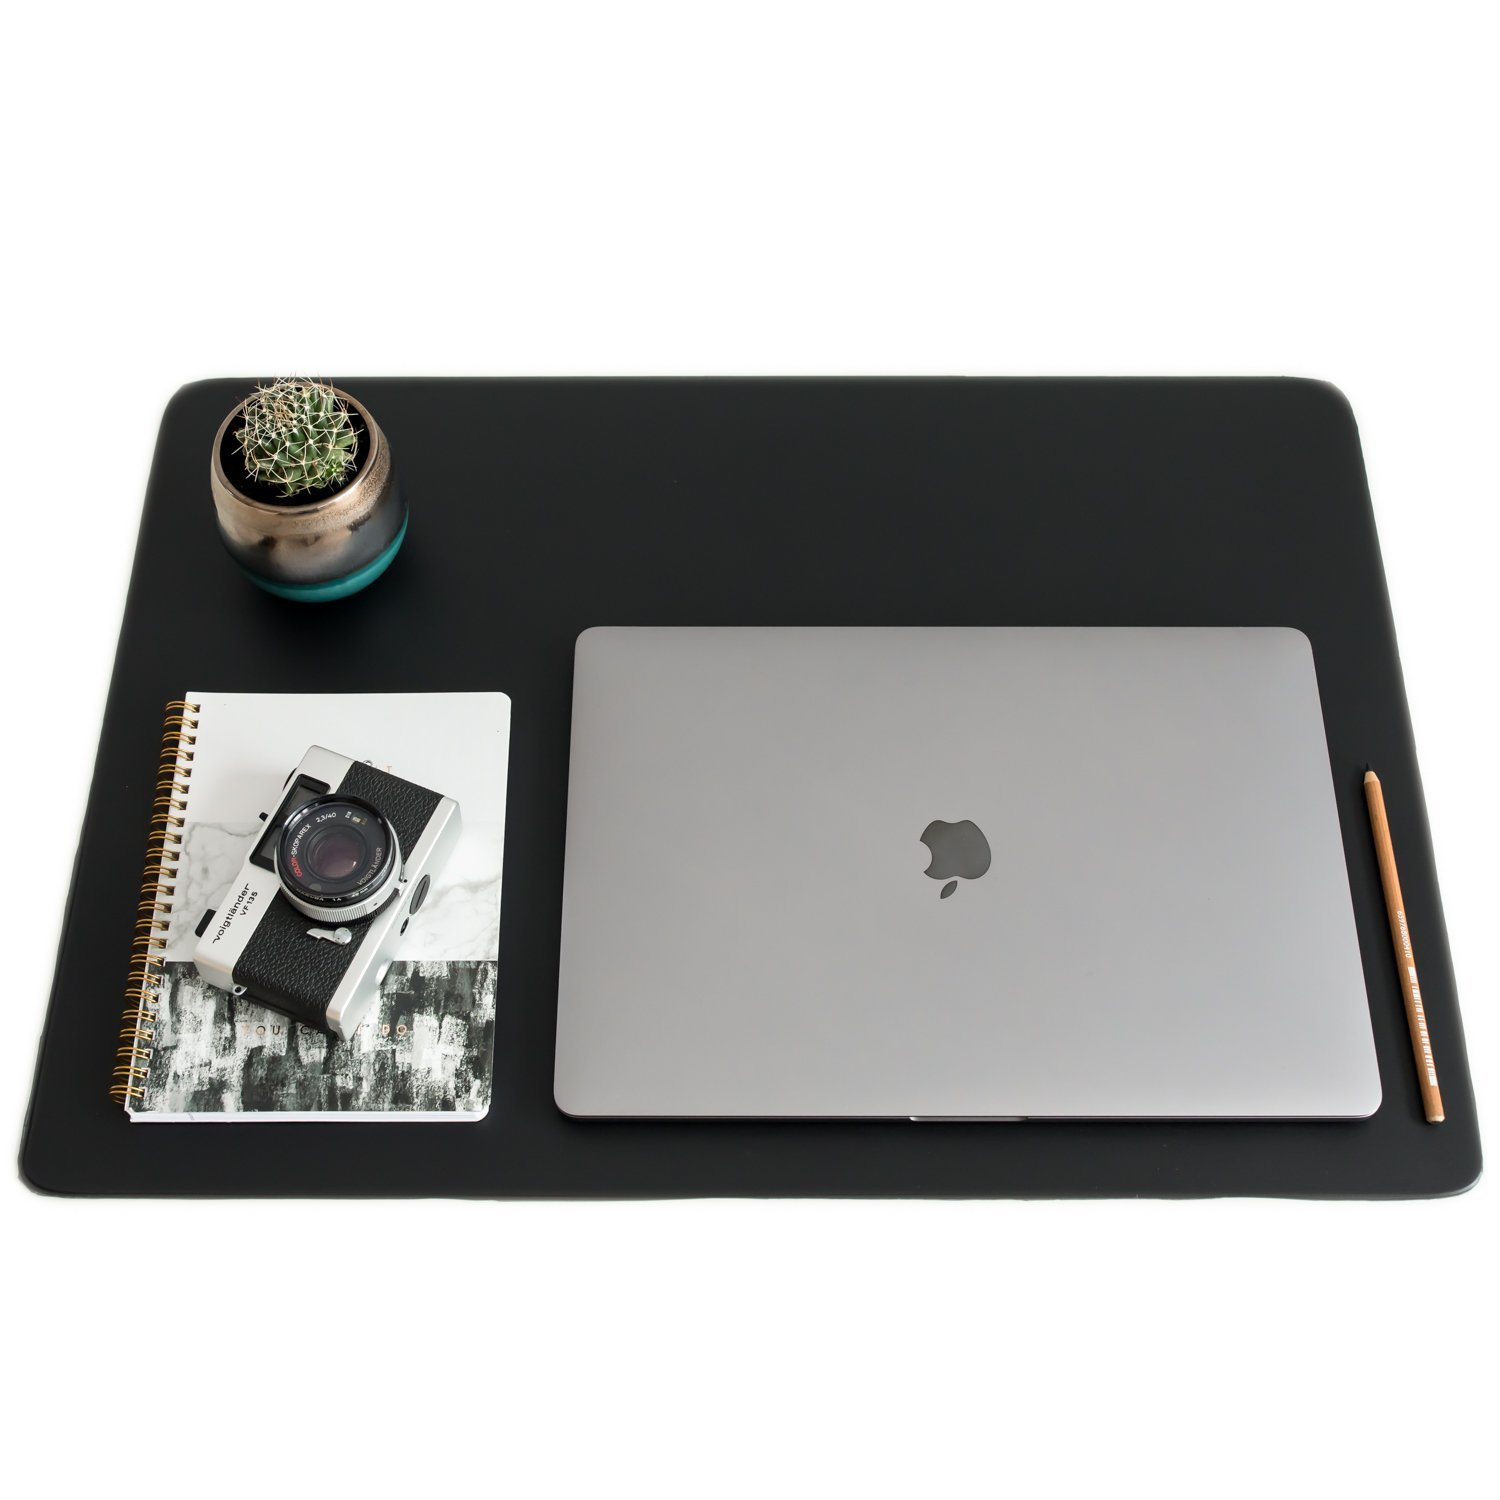 "ZBRANDS // Leather Smooth Desk Mat Pad Blotter Protector 24"" x 17"", Midnight Black, Extended Non-Slip Rectangular, Laptop Keyboard Mouse Pad"